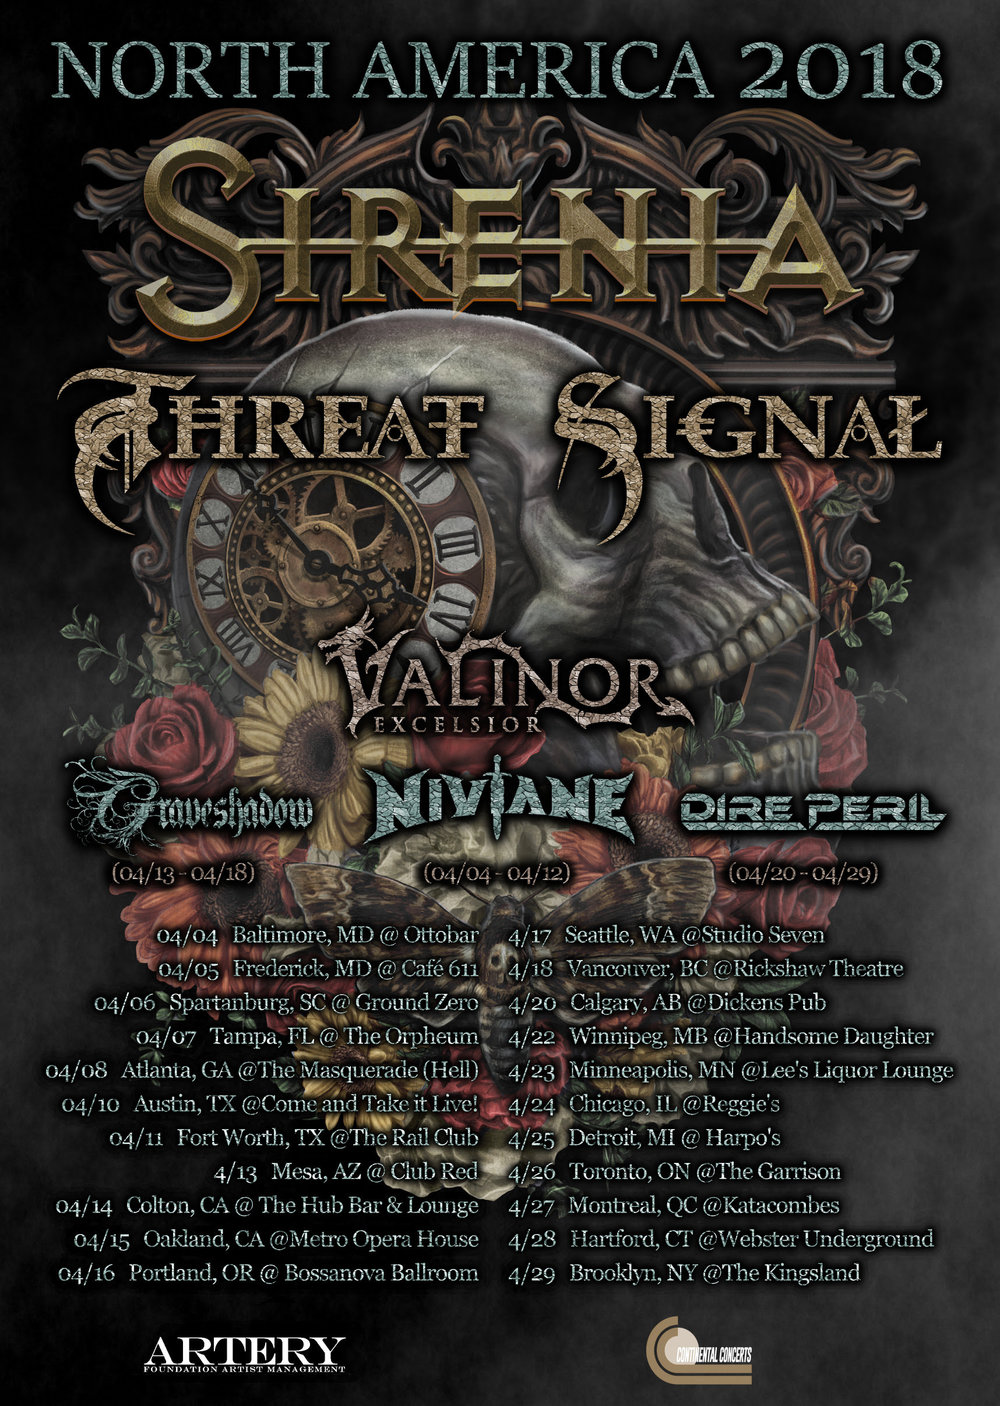 "Norway's  SIRENIA  return to the road in North America tonight alongside on a headline tour with support Canada's Threat Signal.  The tour starts in Baltimore, MD and runs through April 29th in Brooklyn, NY.  A complete list of dates can be found below.  ""We are very excited to be returning to North America. Thanks to all our fans who supported us the last time, we are able to come back for yet another tour.  Our goal is to keep coming back on a regular basis. Looking forward to seeing you all again very soon,"" says  SIRENIA  mastermind Morten Veland.   SIRENIA  are currently hard at work on the follow up to their 2016 Napalm Record's release  ""Dim Days of Dolor""  and are shooting for a late 2018 release.  Expect to see your  SIRENIA  favorites and new selections on tour!   SIRENIA + Threat Signal + supports    4/4: Baltimore, MD @ Ottobar    4/5: Frederick, MD @ Café 611    4/6: Spartanburg, SC @ Ground Zero    4/7: Tampa, FL @ The Orpheum    4/8: Atlanta, GA @ The Masquerade (Hell)    4/10: Austin, TX @ Come and Take it Live!    4/11: Fort Worth, TX @ The Rail Club    4/13: Mesa, AZ @ Club Red    4/14: Colton, CA @ The Hub Bar & Lounge    4/15: Oakland, CA Metro Opera House    4/16: Portland, OR @ Bossanova Ballroom    4/17: Seattle, WA Studio Seven    4/18: Vancouver, BC Rickshaw Theatre    4/20: Calgary, AB Dickens Pub    4/22: Winnipeg, MB Handsome Daughter    4/23: Minneapolis, M Lee's Liquor Lounge    4/24: Chicago, IL Reggie's    4/25: Detroit, MI Harpo's    4/26: Toronto, ON The Garrison    4/27: Montreal, QC Katacombes    4/28: Hartford, CT Webster Underground    4/29: Brooklyn, NY @ The Kingsland       More on SIRENIA:       SIRENIA  was formed by Morten Veland in January 2001. Morten's musical work was already well known through his work with his former band Tristania, a band he co-founded back in the mid-nineties. Being the main songwriter for this band he was a part of defining the gothic metal sound from a very early time on.  With  SIRENIA  his intention was to bring it to the next level, a task he succeeded to fulfil. Up to date  SIRENIA  has released 7 albums, an EP and several singles. Their albums have made it to the charts in 6 countries, receiving great reviews worldwide. Meanwhile their singles have topped radio charts in several countries. Their 8th album 'Dim Days of Dolor' will be released on the 11th of November 2016 by Napalm Records. 'Dim Days of Dolor' is a very diverse and complete album that sums up the bands career in addition to adding new and exciting elements. With this album the band shows that they have staked out their musical path and perfected their unique style.   SIRENIA  sounds like a mixture of gothic metal and rock with classical orchestrations, in addition to some elements from more extreme metal genres. Their sound have a solid base in the powerful drums and bass supported by massive rhythm guitars, dressed with atmospheric keyboards andspiced with melancholic violins and 12-string guitars. The music is at all times melodic and groovy. The vocal styles are diverse and consist of female vocals, choirs, growls, screams, clean male vocals, whispers and samples. The songs are very intense and the atmosphere changes frequently. The lyrics are based on reflections on life, death, love, hate, paranoia, anxiety and mental decline in general.      For More Info Visit:    https://www.facebook.com/sirenia/   http://www.mortenveland.com/sirenia/"